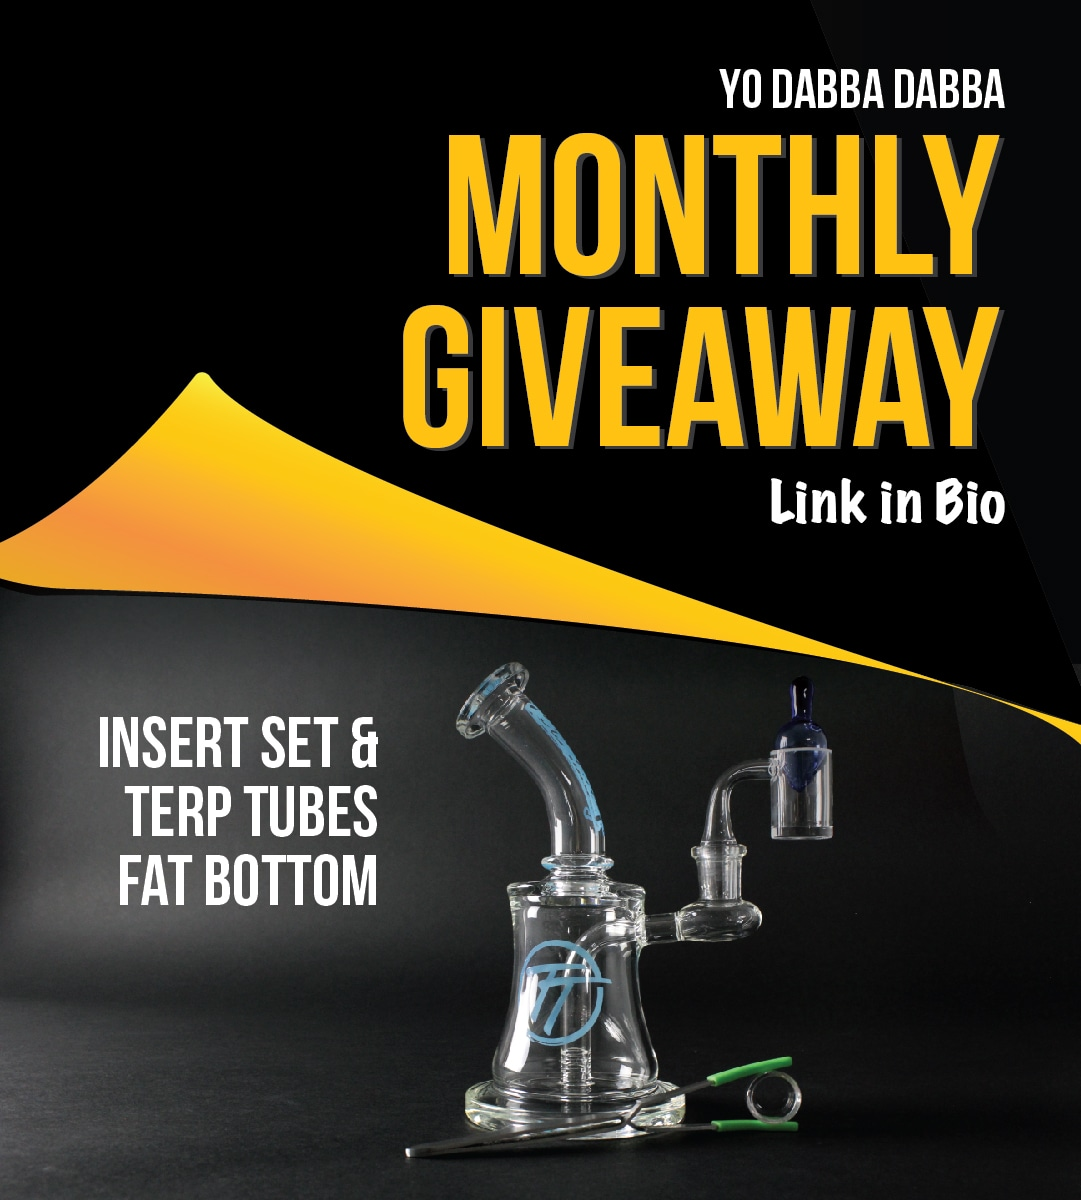 Win a Terp Tubes Fat Bottom Rig & Yo Dabba Dabba Insert Set! Giveaway Image